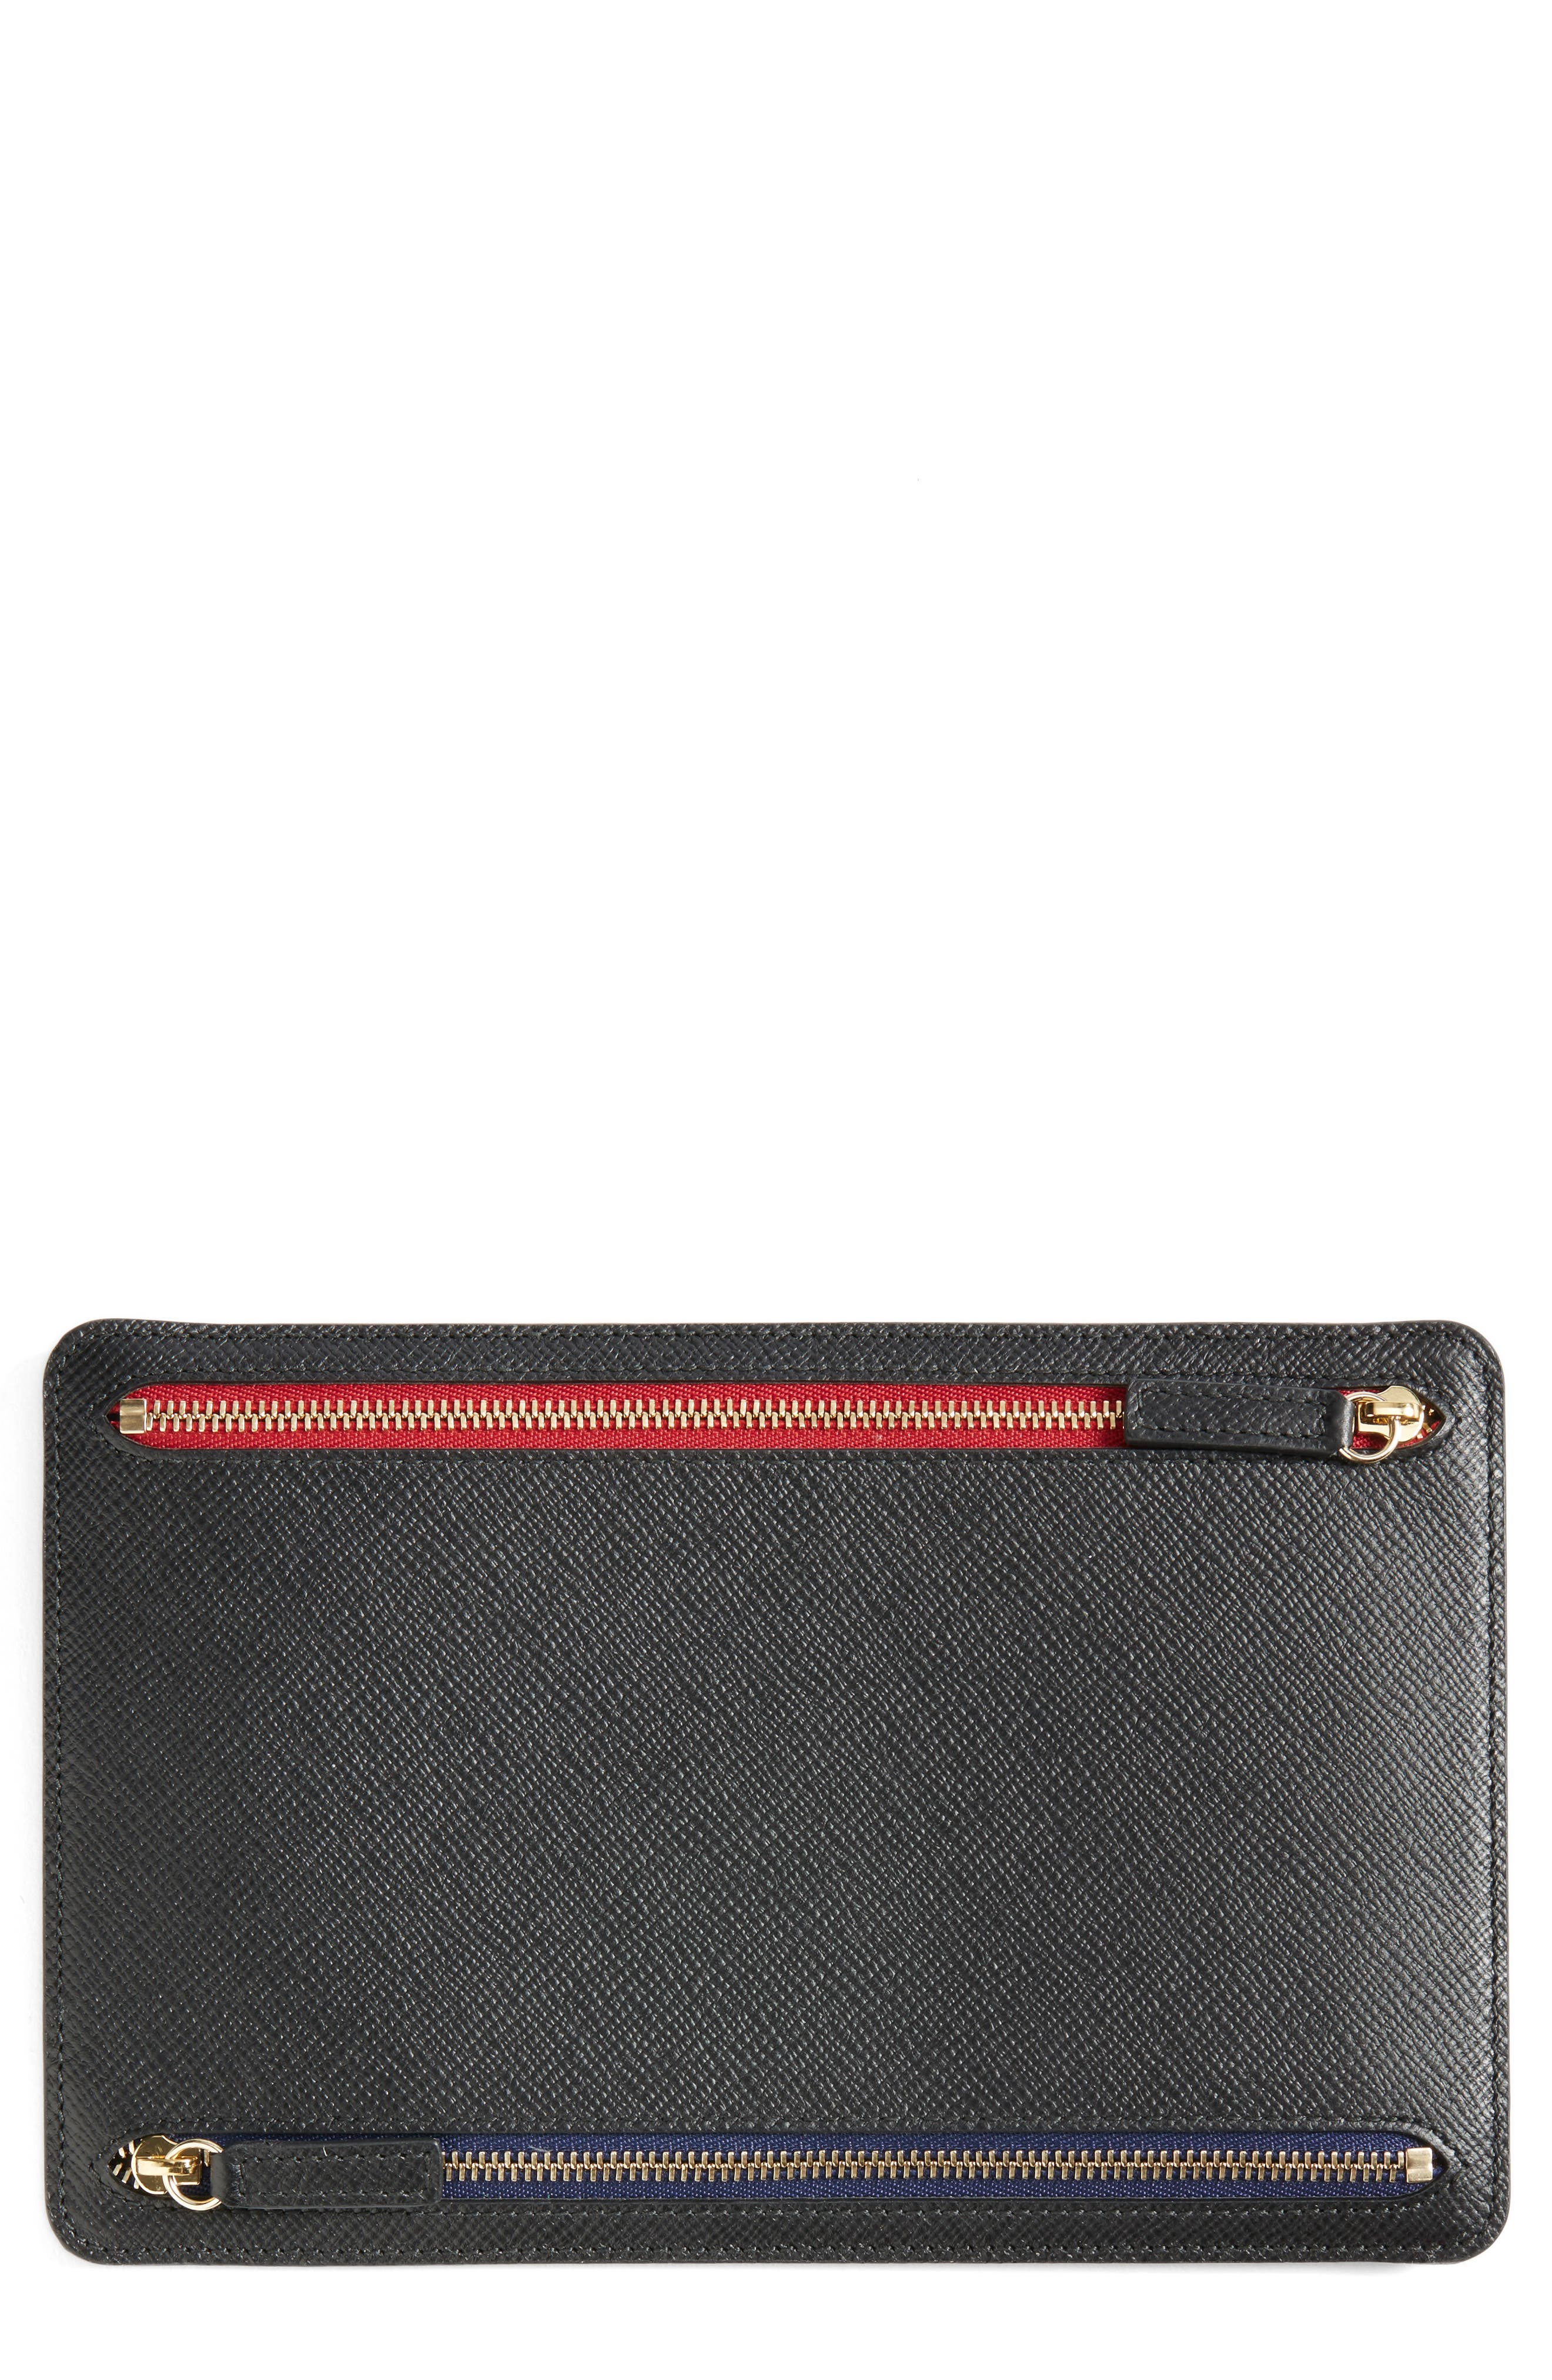 'Panama' Zip Currency Case,                         Main,                         color, 001